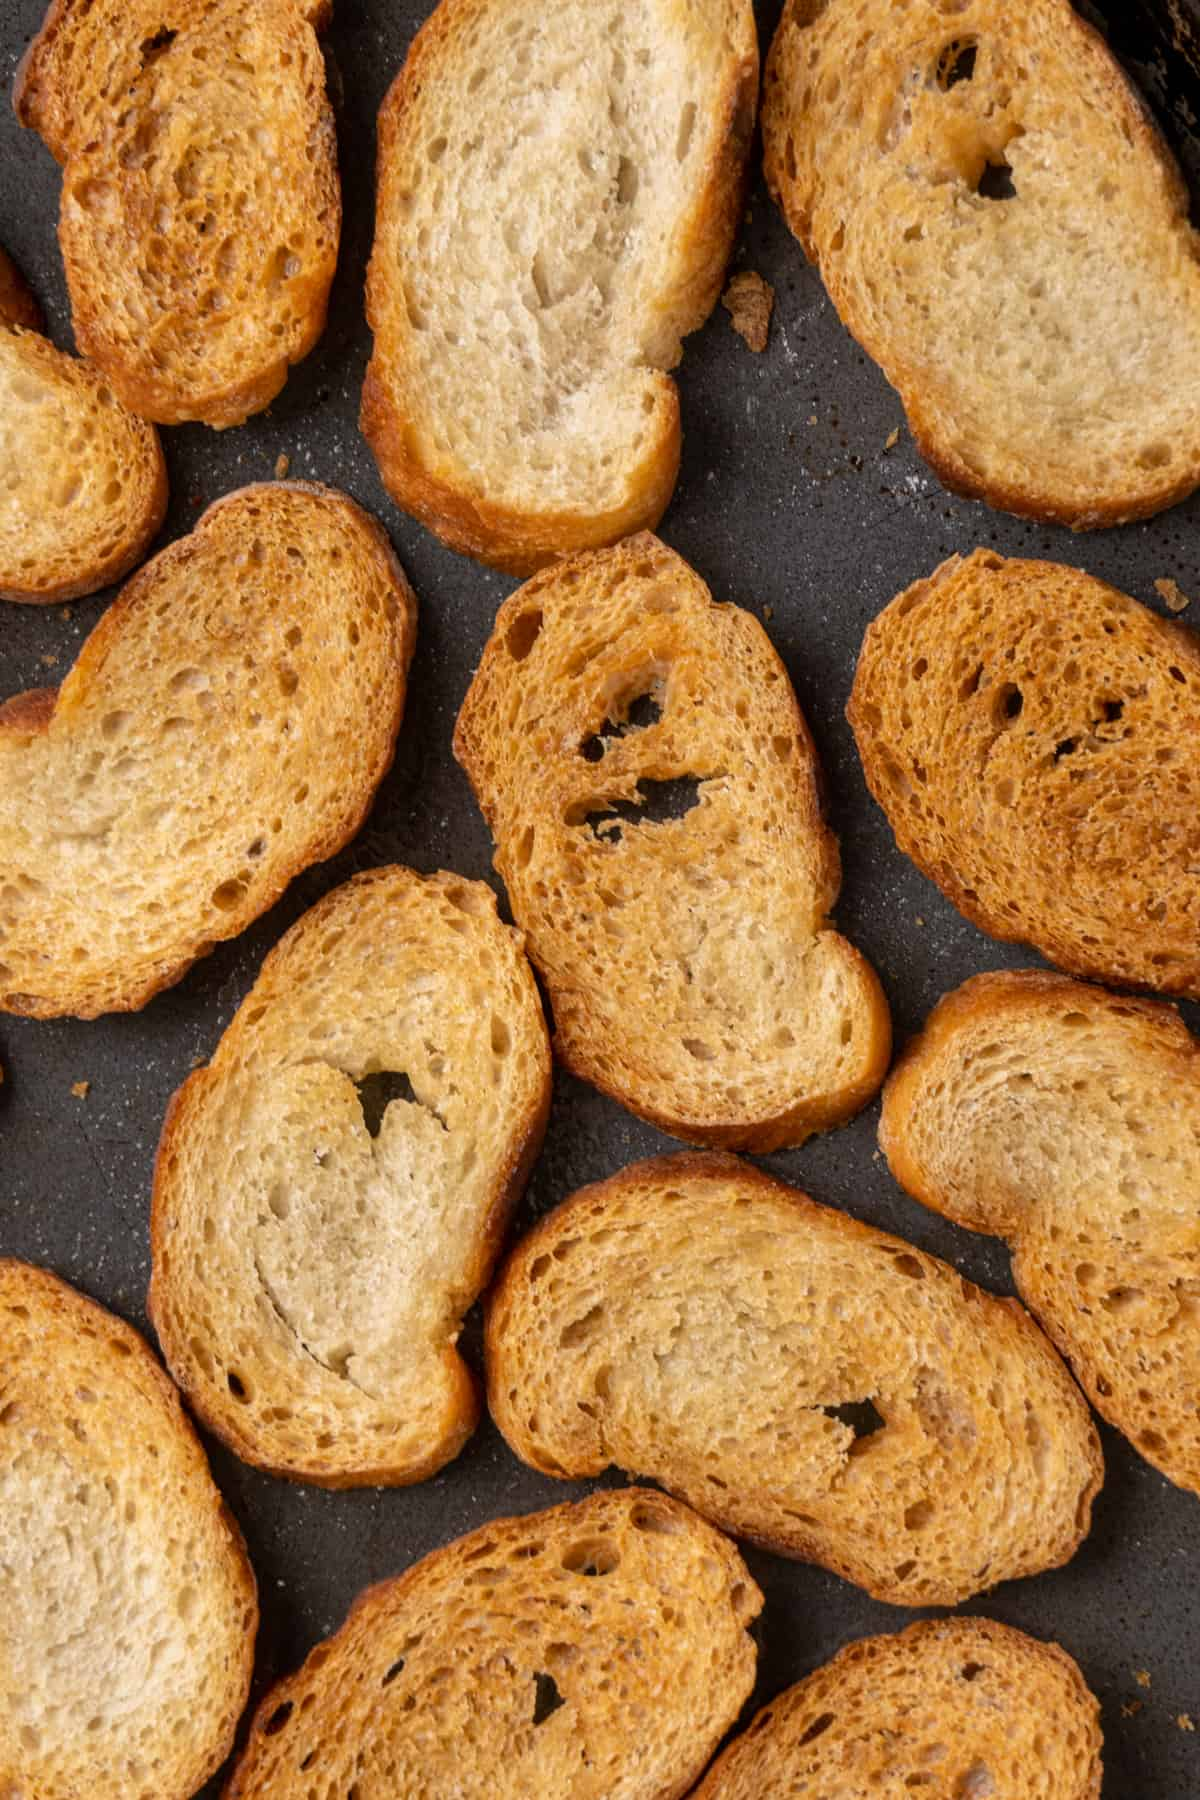 Small oval golden brown re-baked slices of bread on a baking tray.